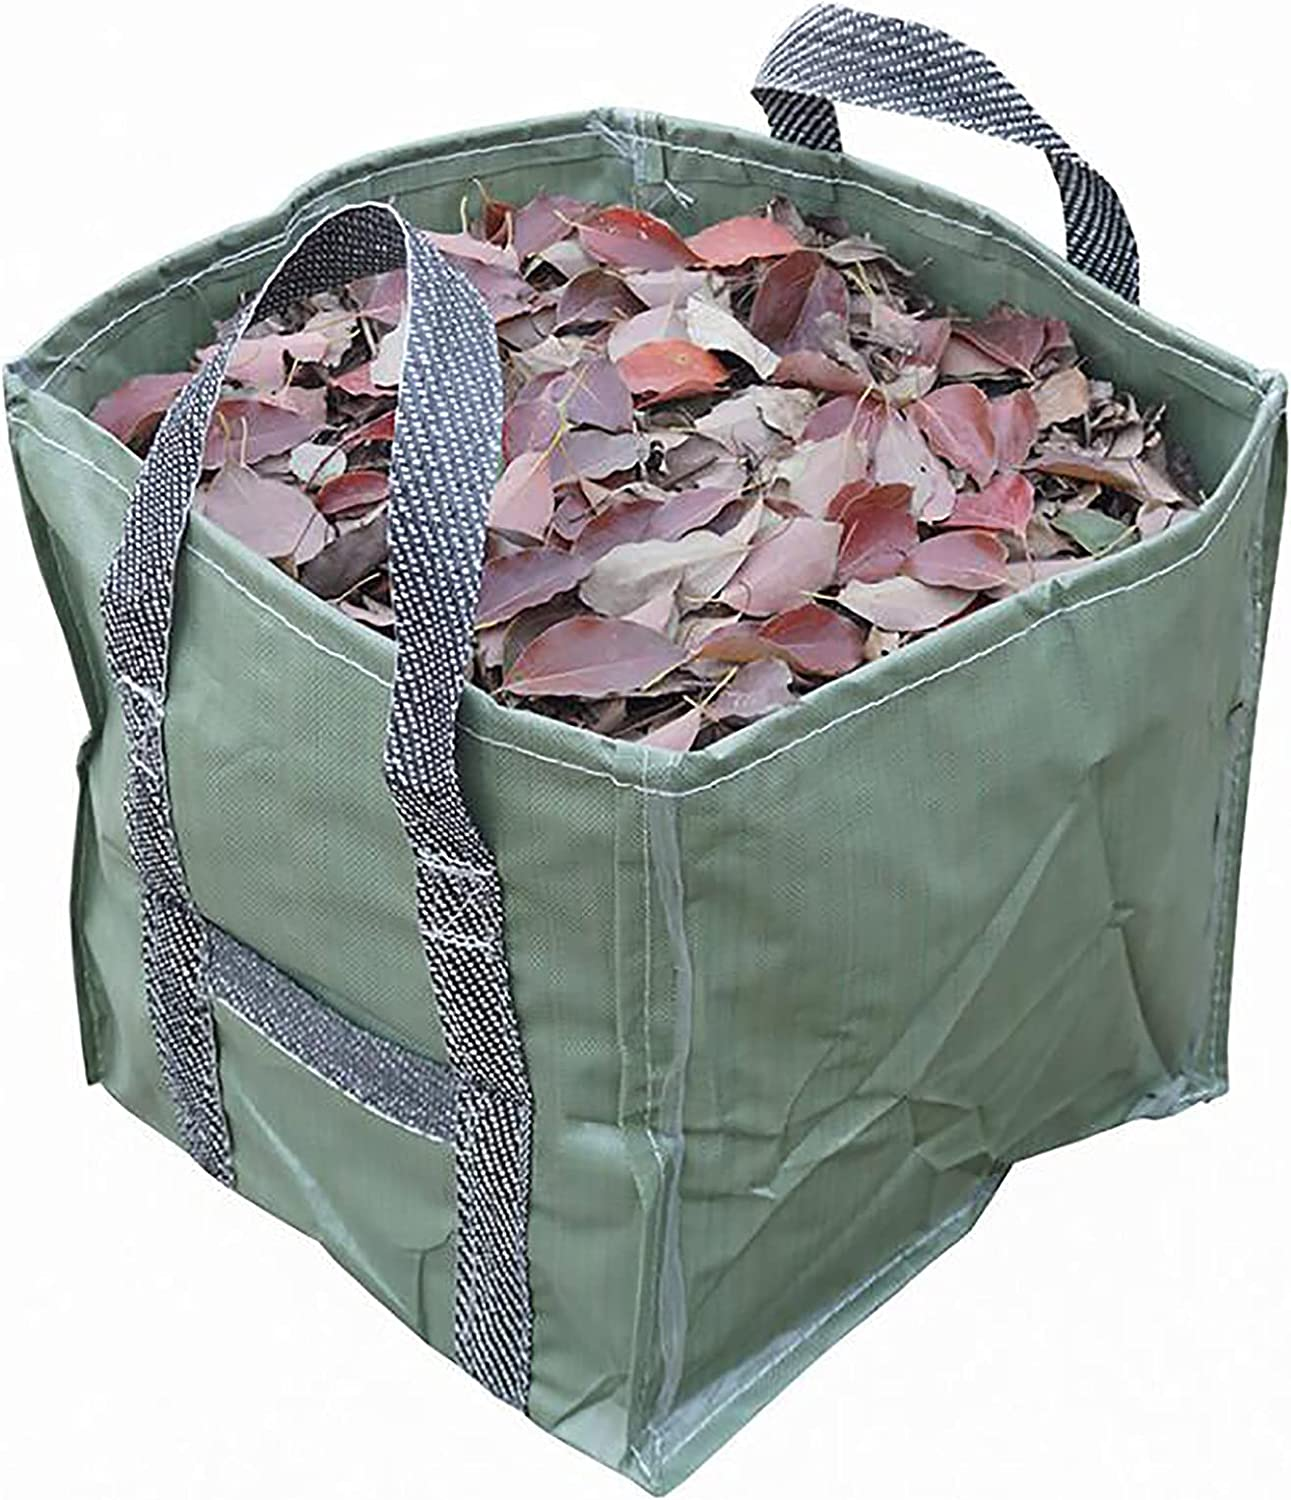 Pumpumly Standard 3 Manufacturer direct delivery Pcs Gardening Bag - 1 year warranty Double Layer with Bottom